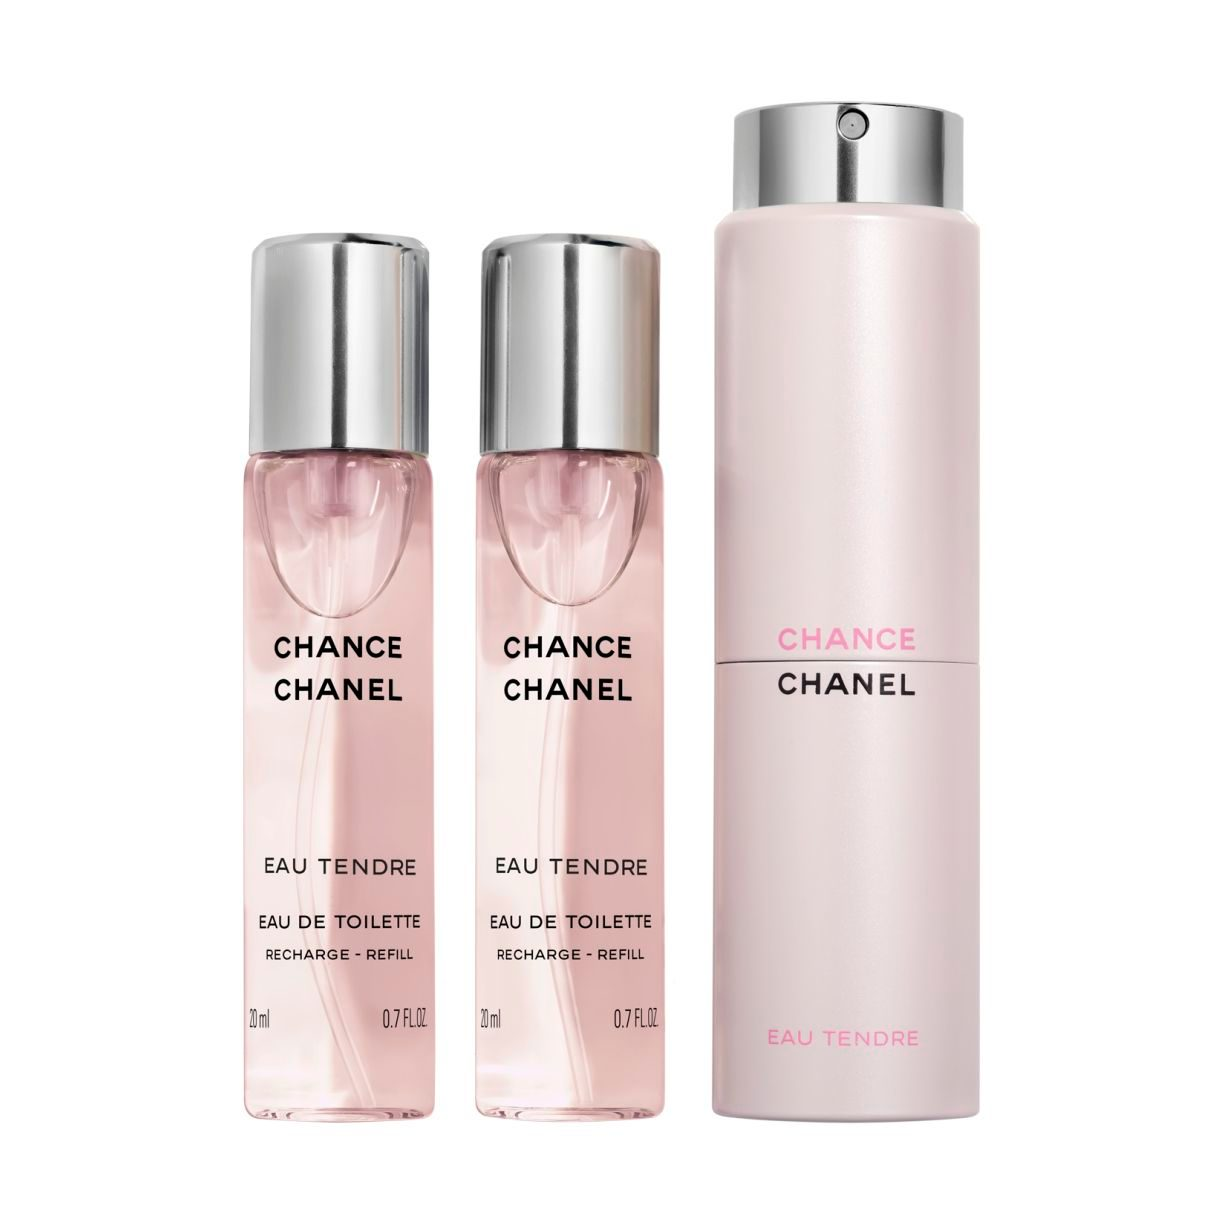 CHANCE EAU TENDRE ТУАЛЕТНАЯ ВОДА TWIST AND SPRAY